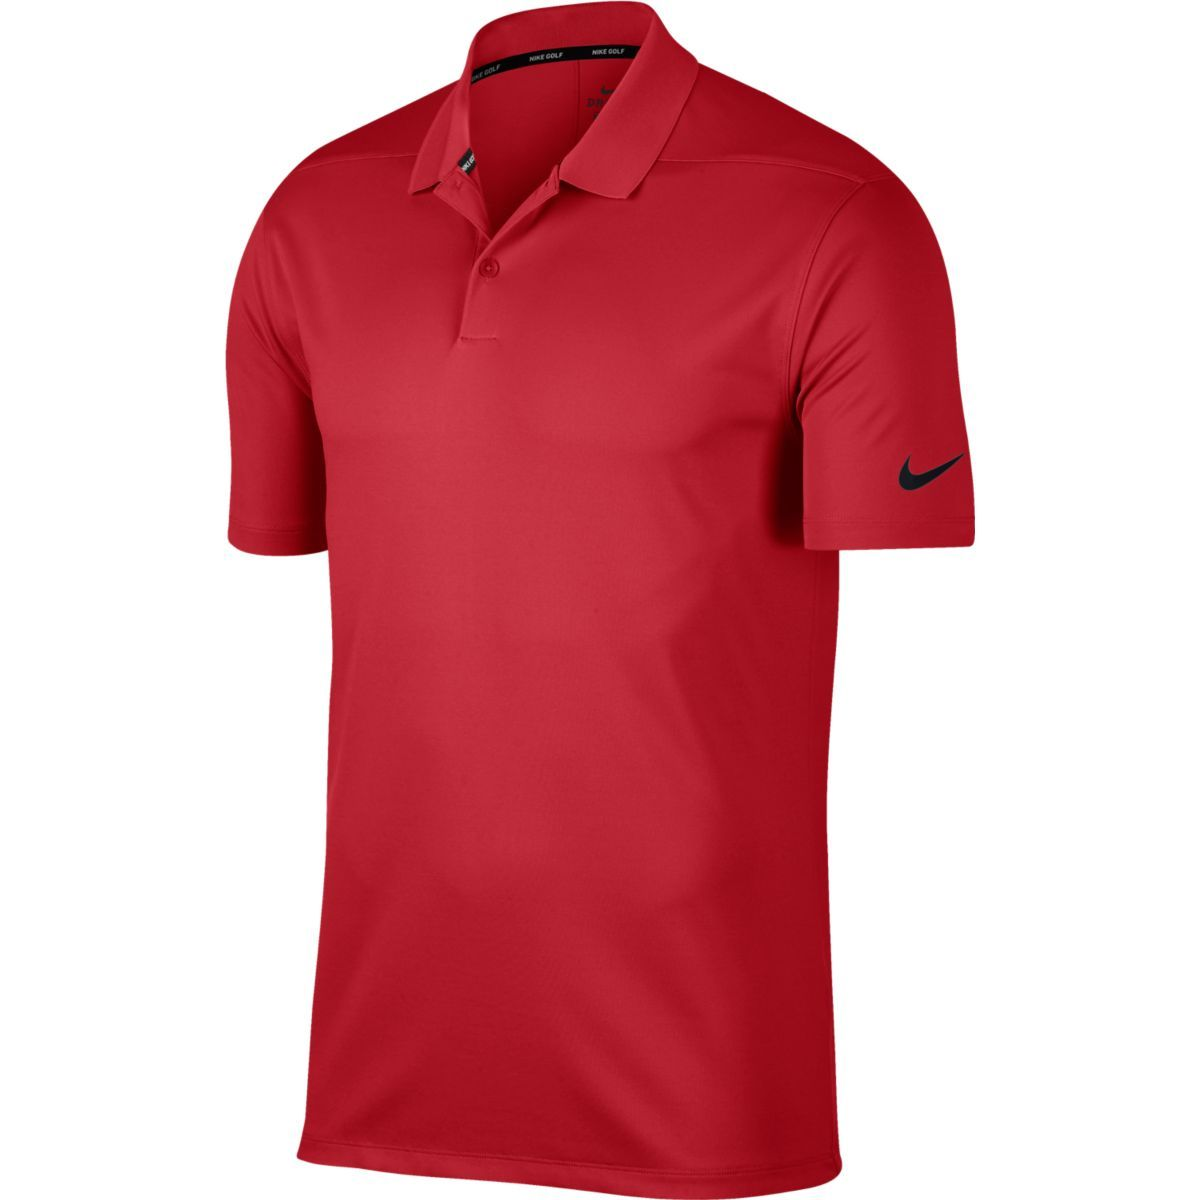 Áo golf nam cộc tay Nike Men Victory Solid Polo Red